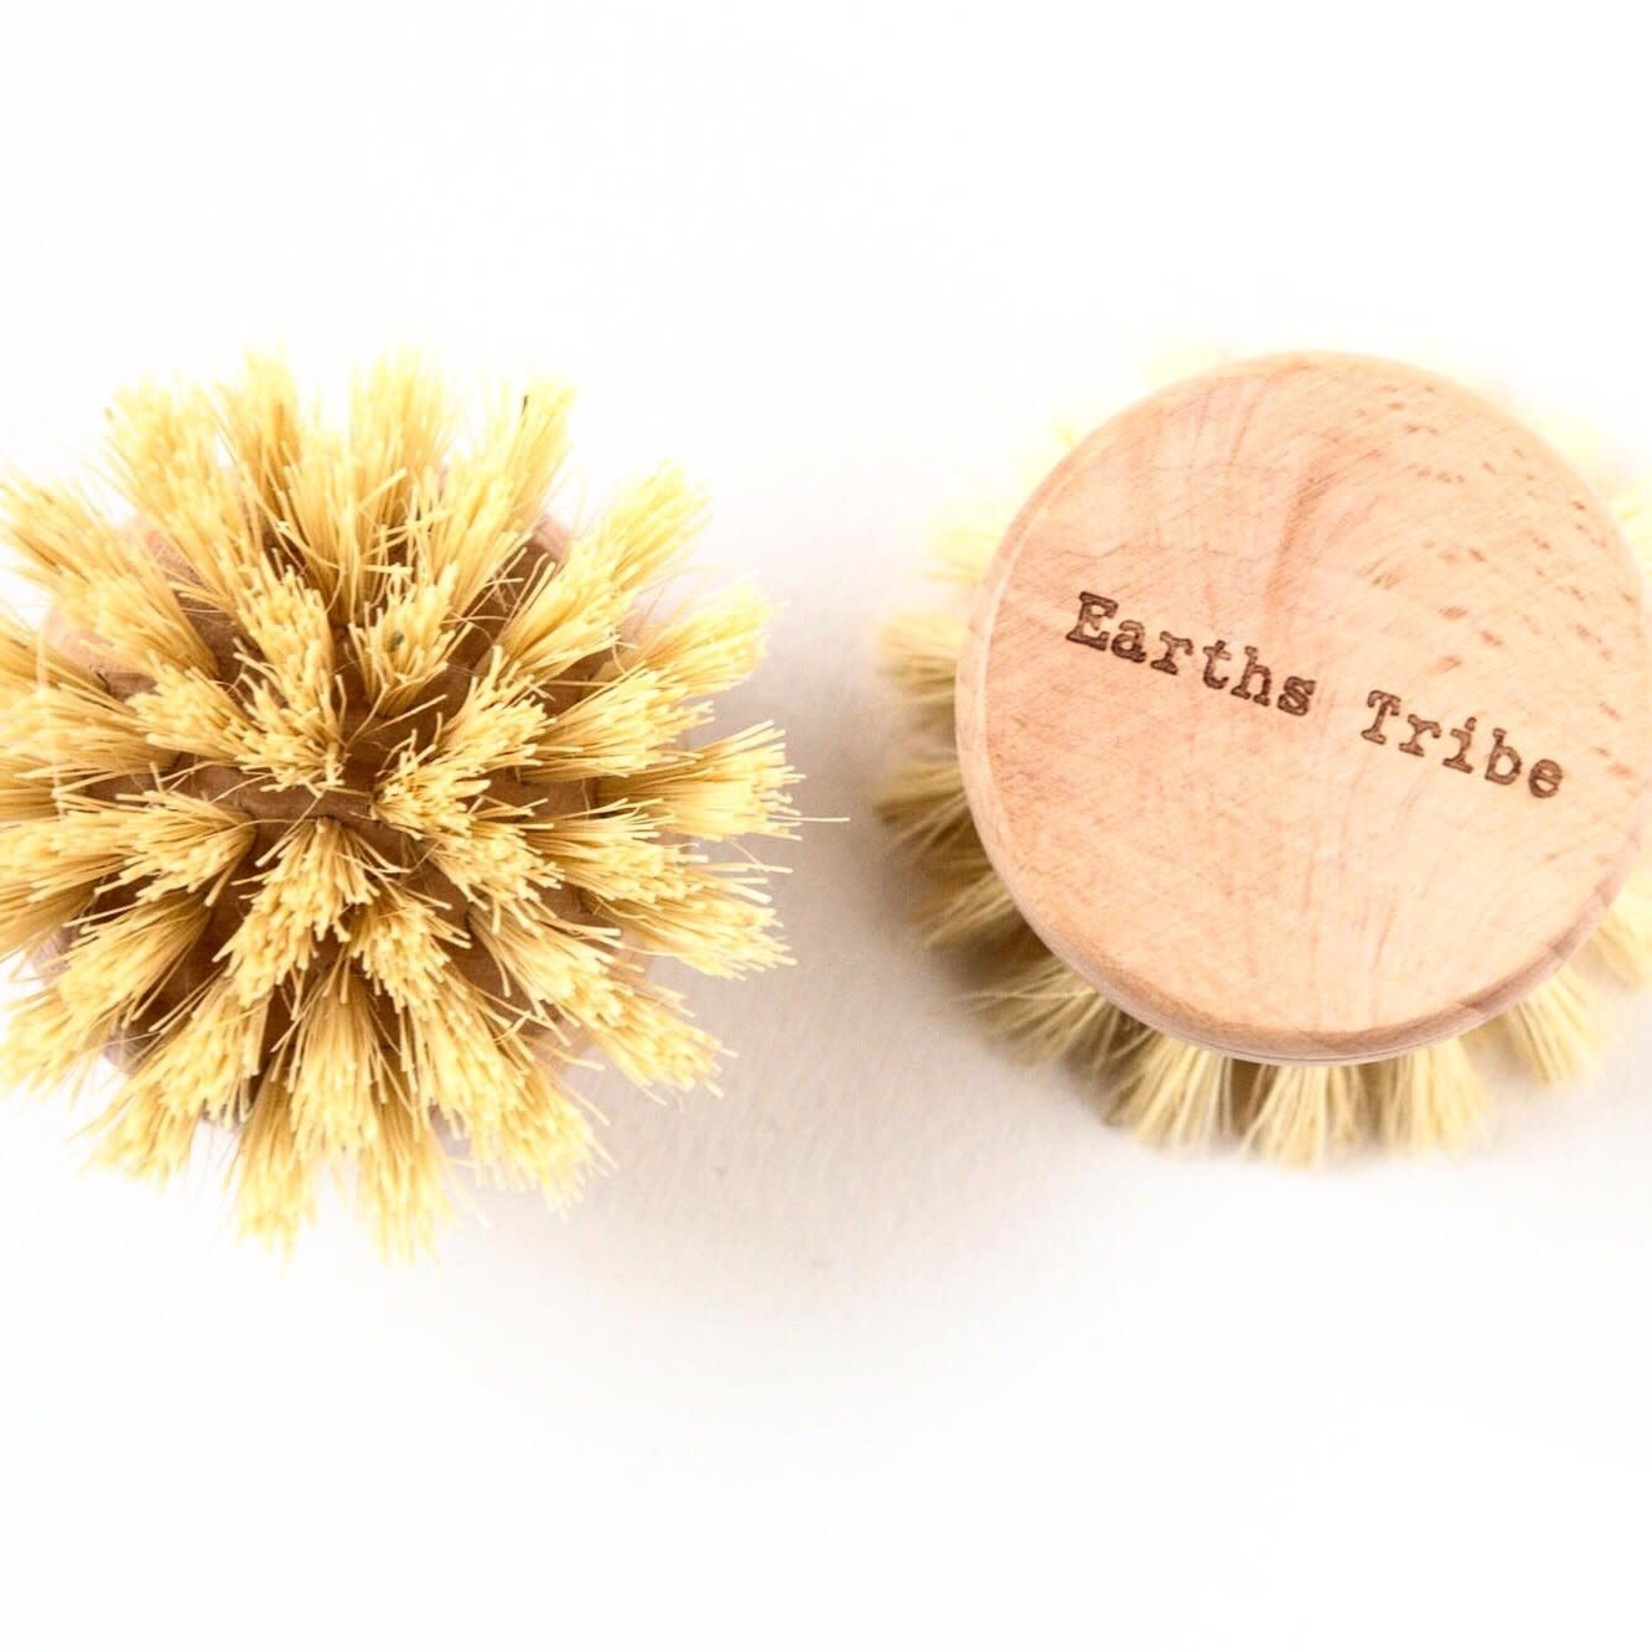 Earths Tribe Earths Tribe Dish Brush Replacement Head